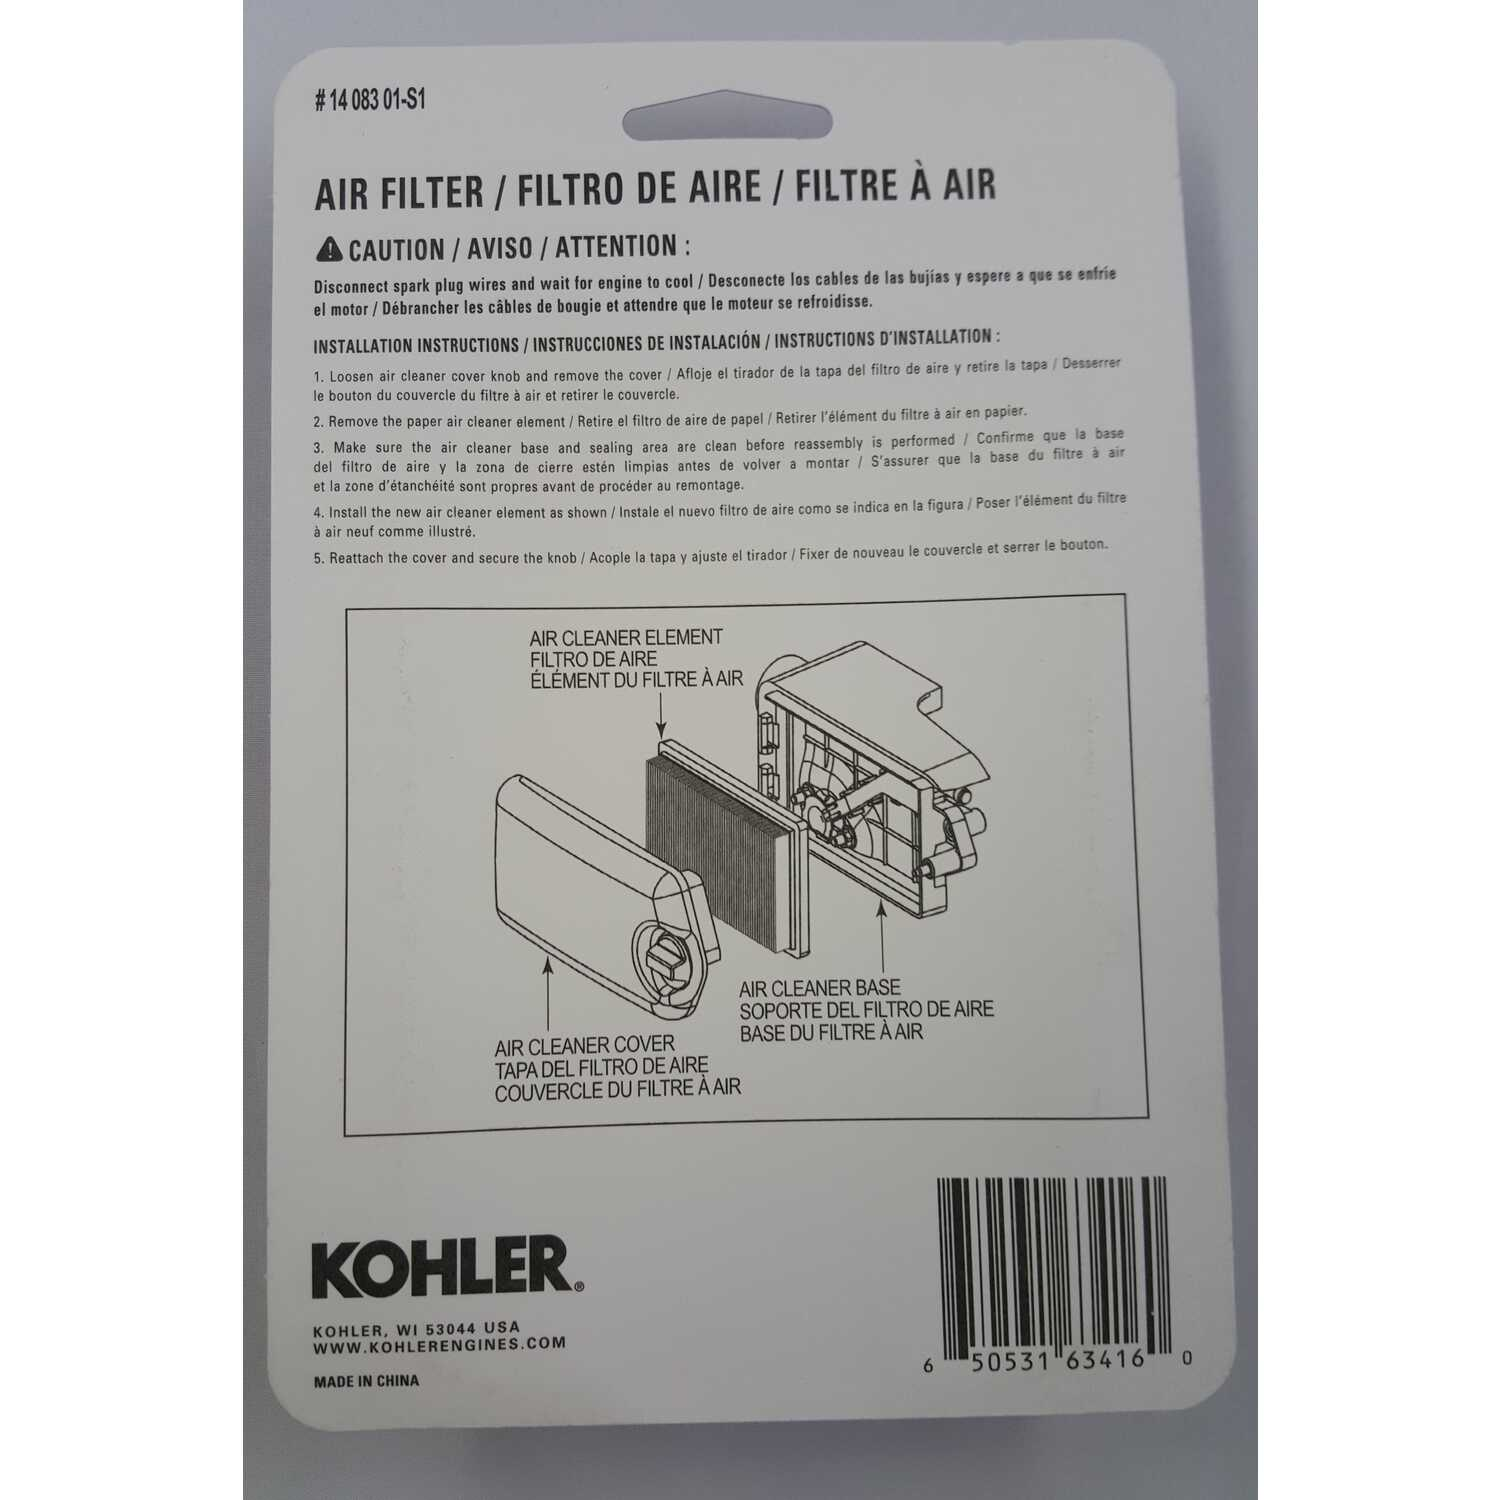 Kohler Small Engine Air Filter For Courage XT6-8 - Ace Hardware